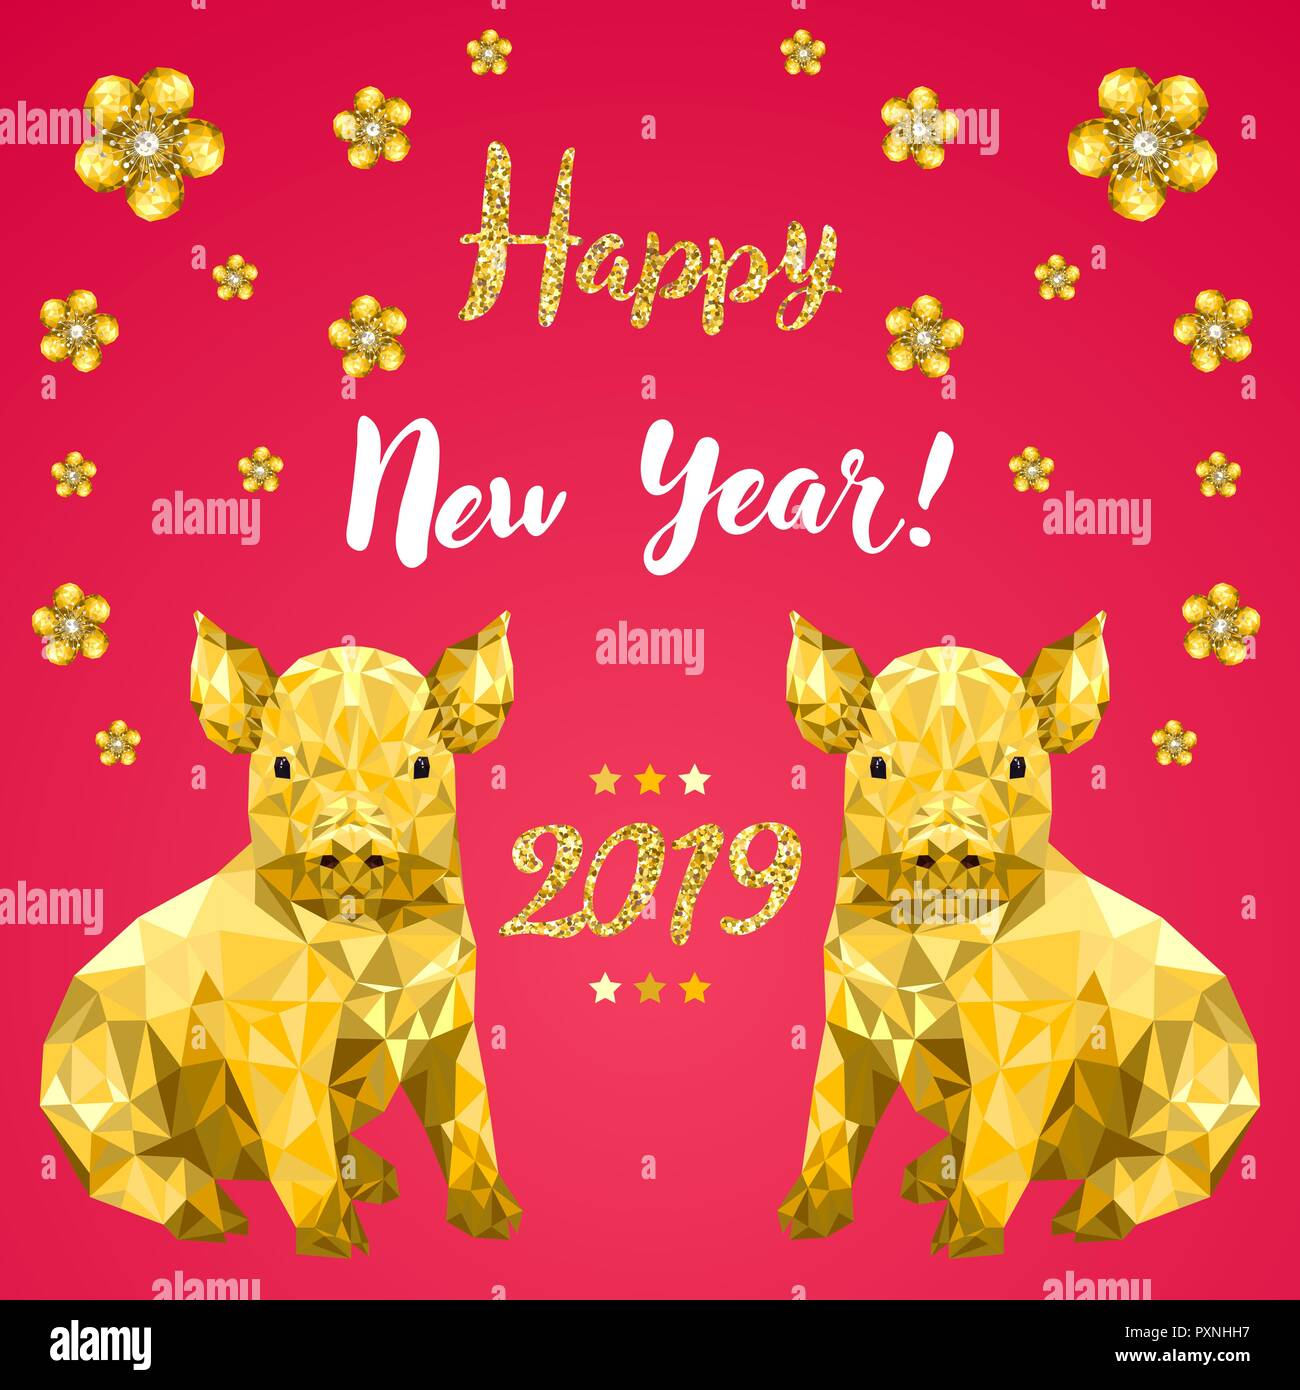 Happy New Year 2019 Chinese New Year Design Gritting Card With Pig